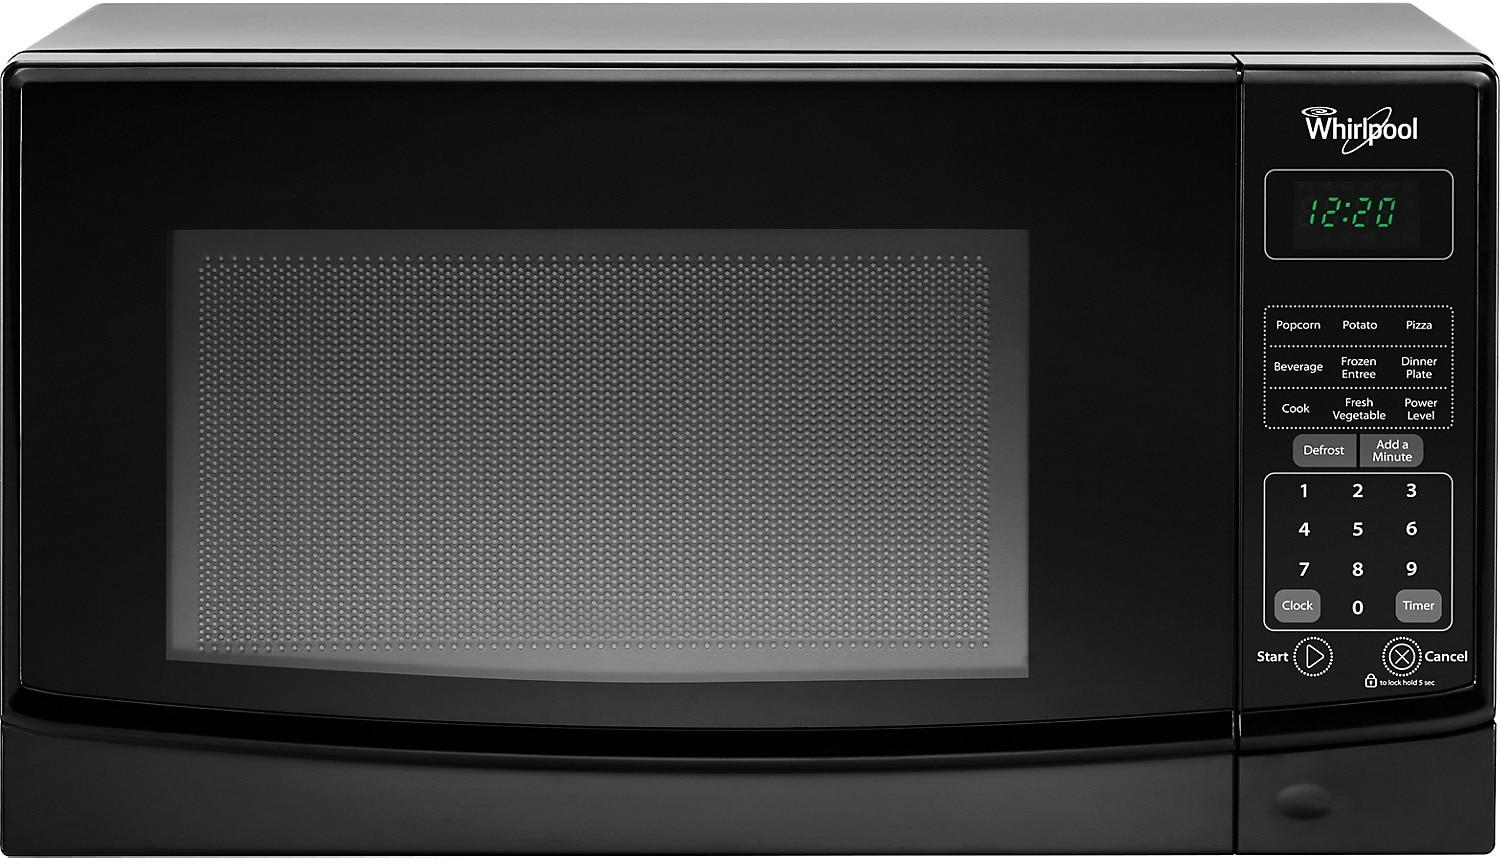 Whirlpool 0.7 Cu. Ft. Countertop Microwave with Electronic Touch Controls - Black